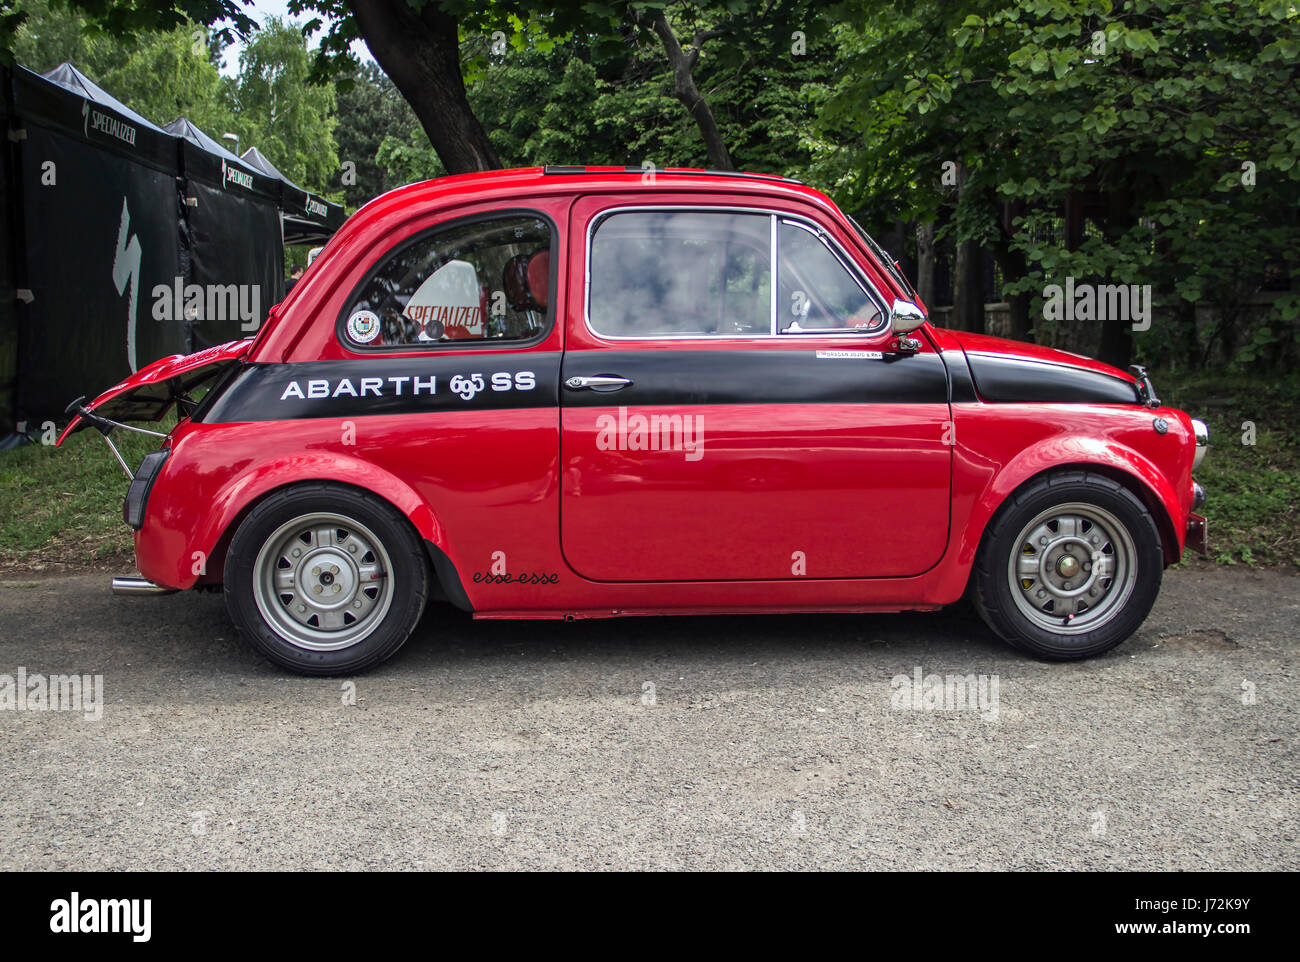 a fiat 500 abarth classic car stock photo 142044615 alamy. Black Bedroom Furniture Sets. Home Design Ideas